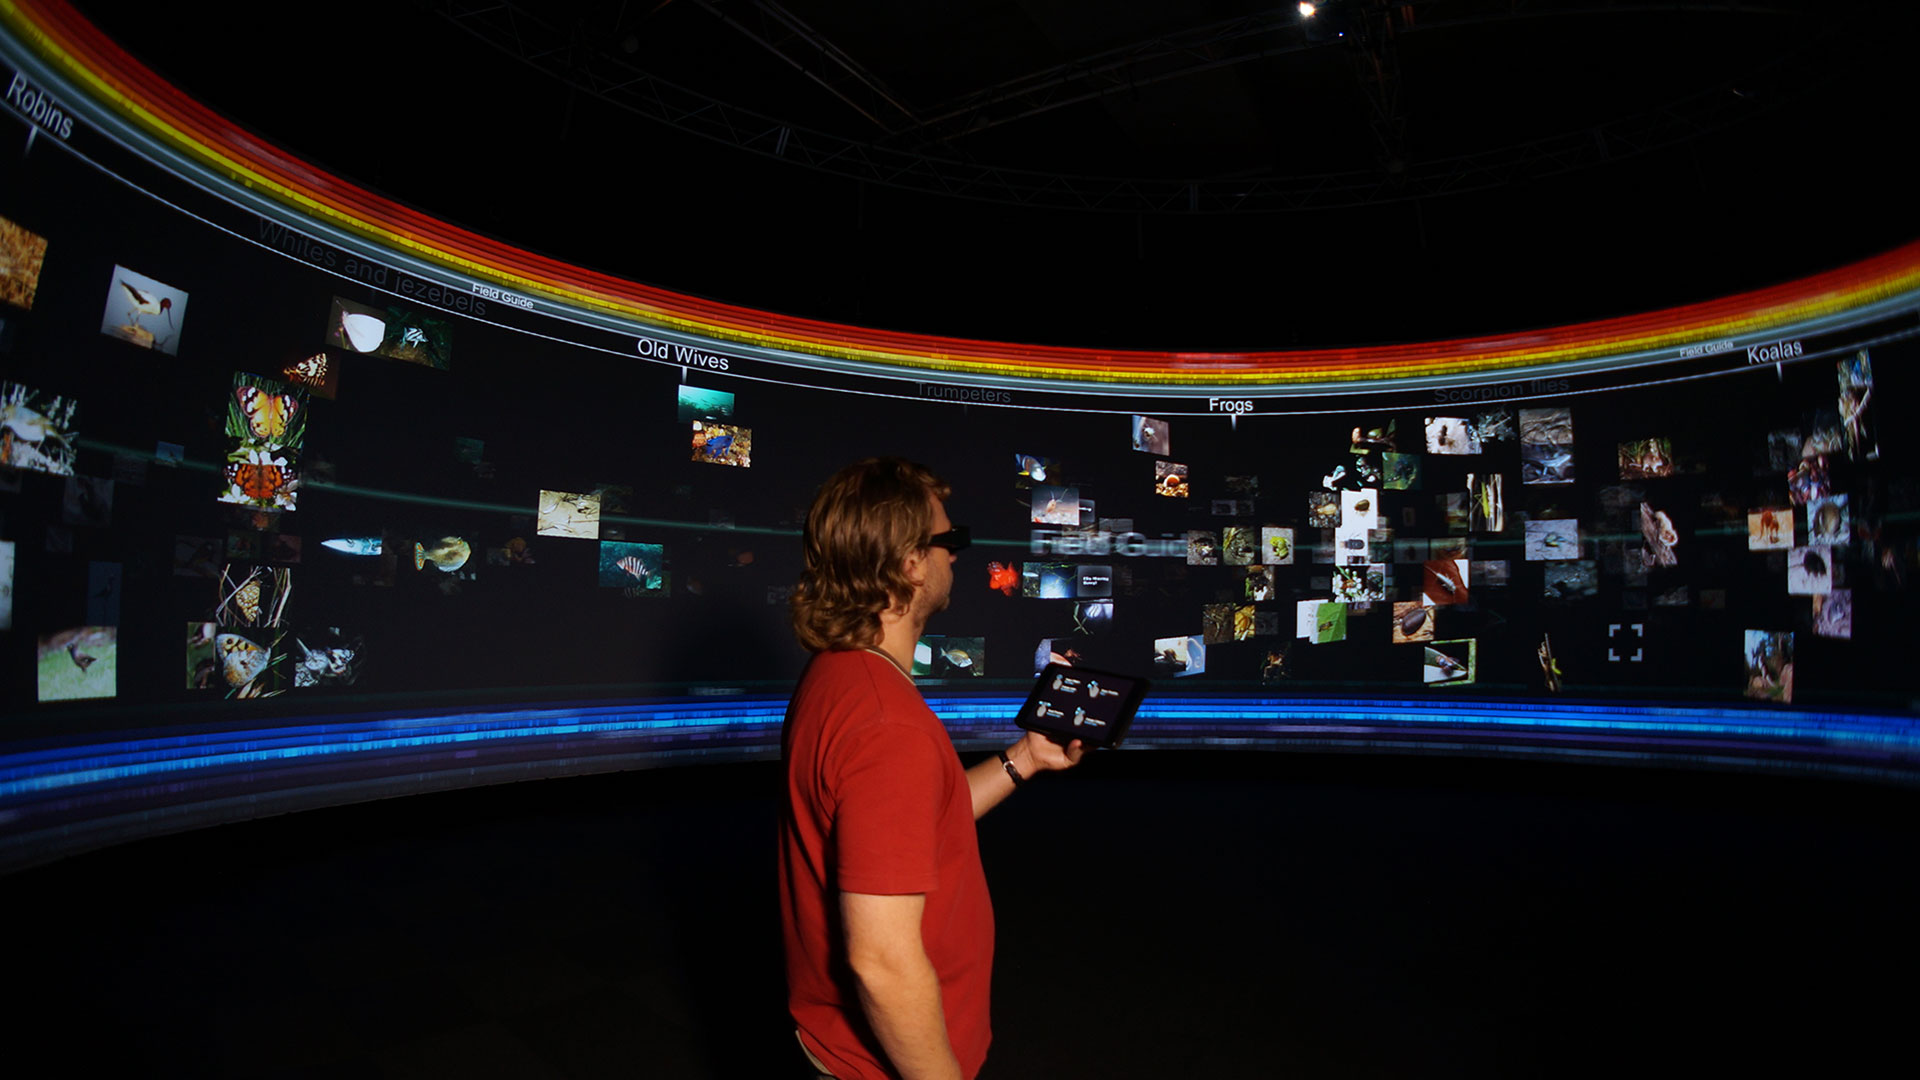 Man standing in front of a 360 degree screen